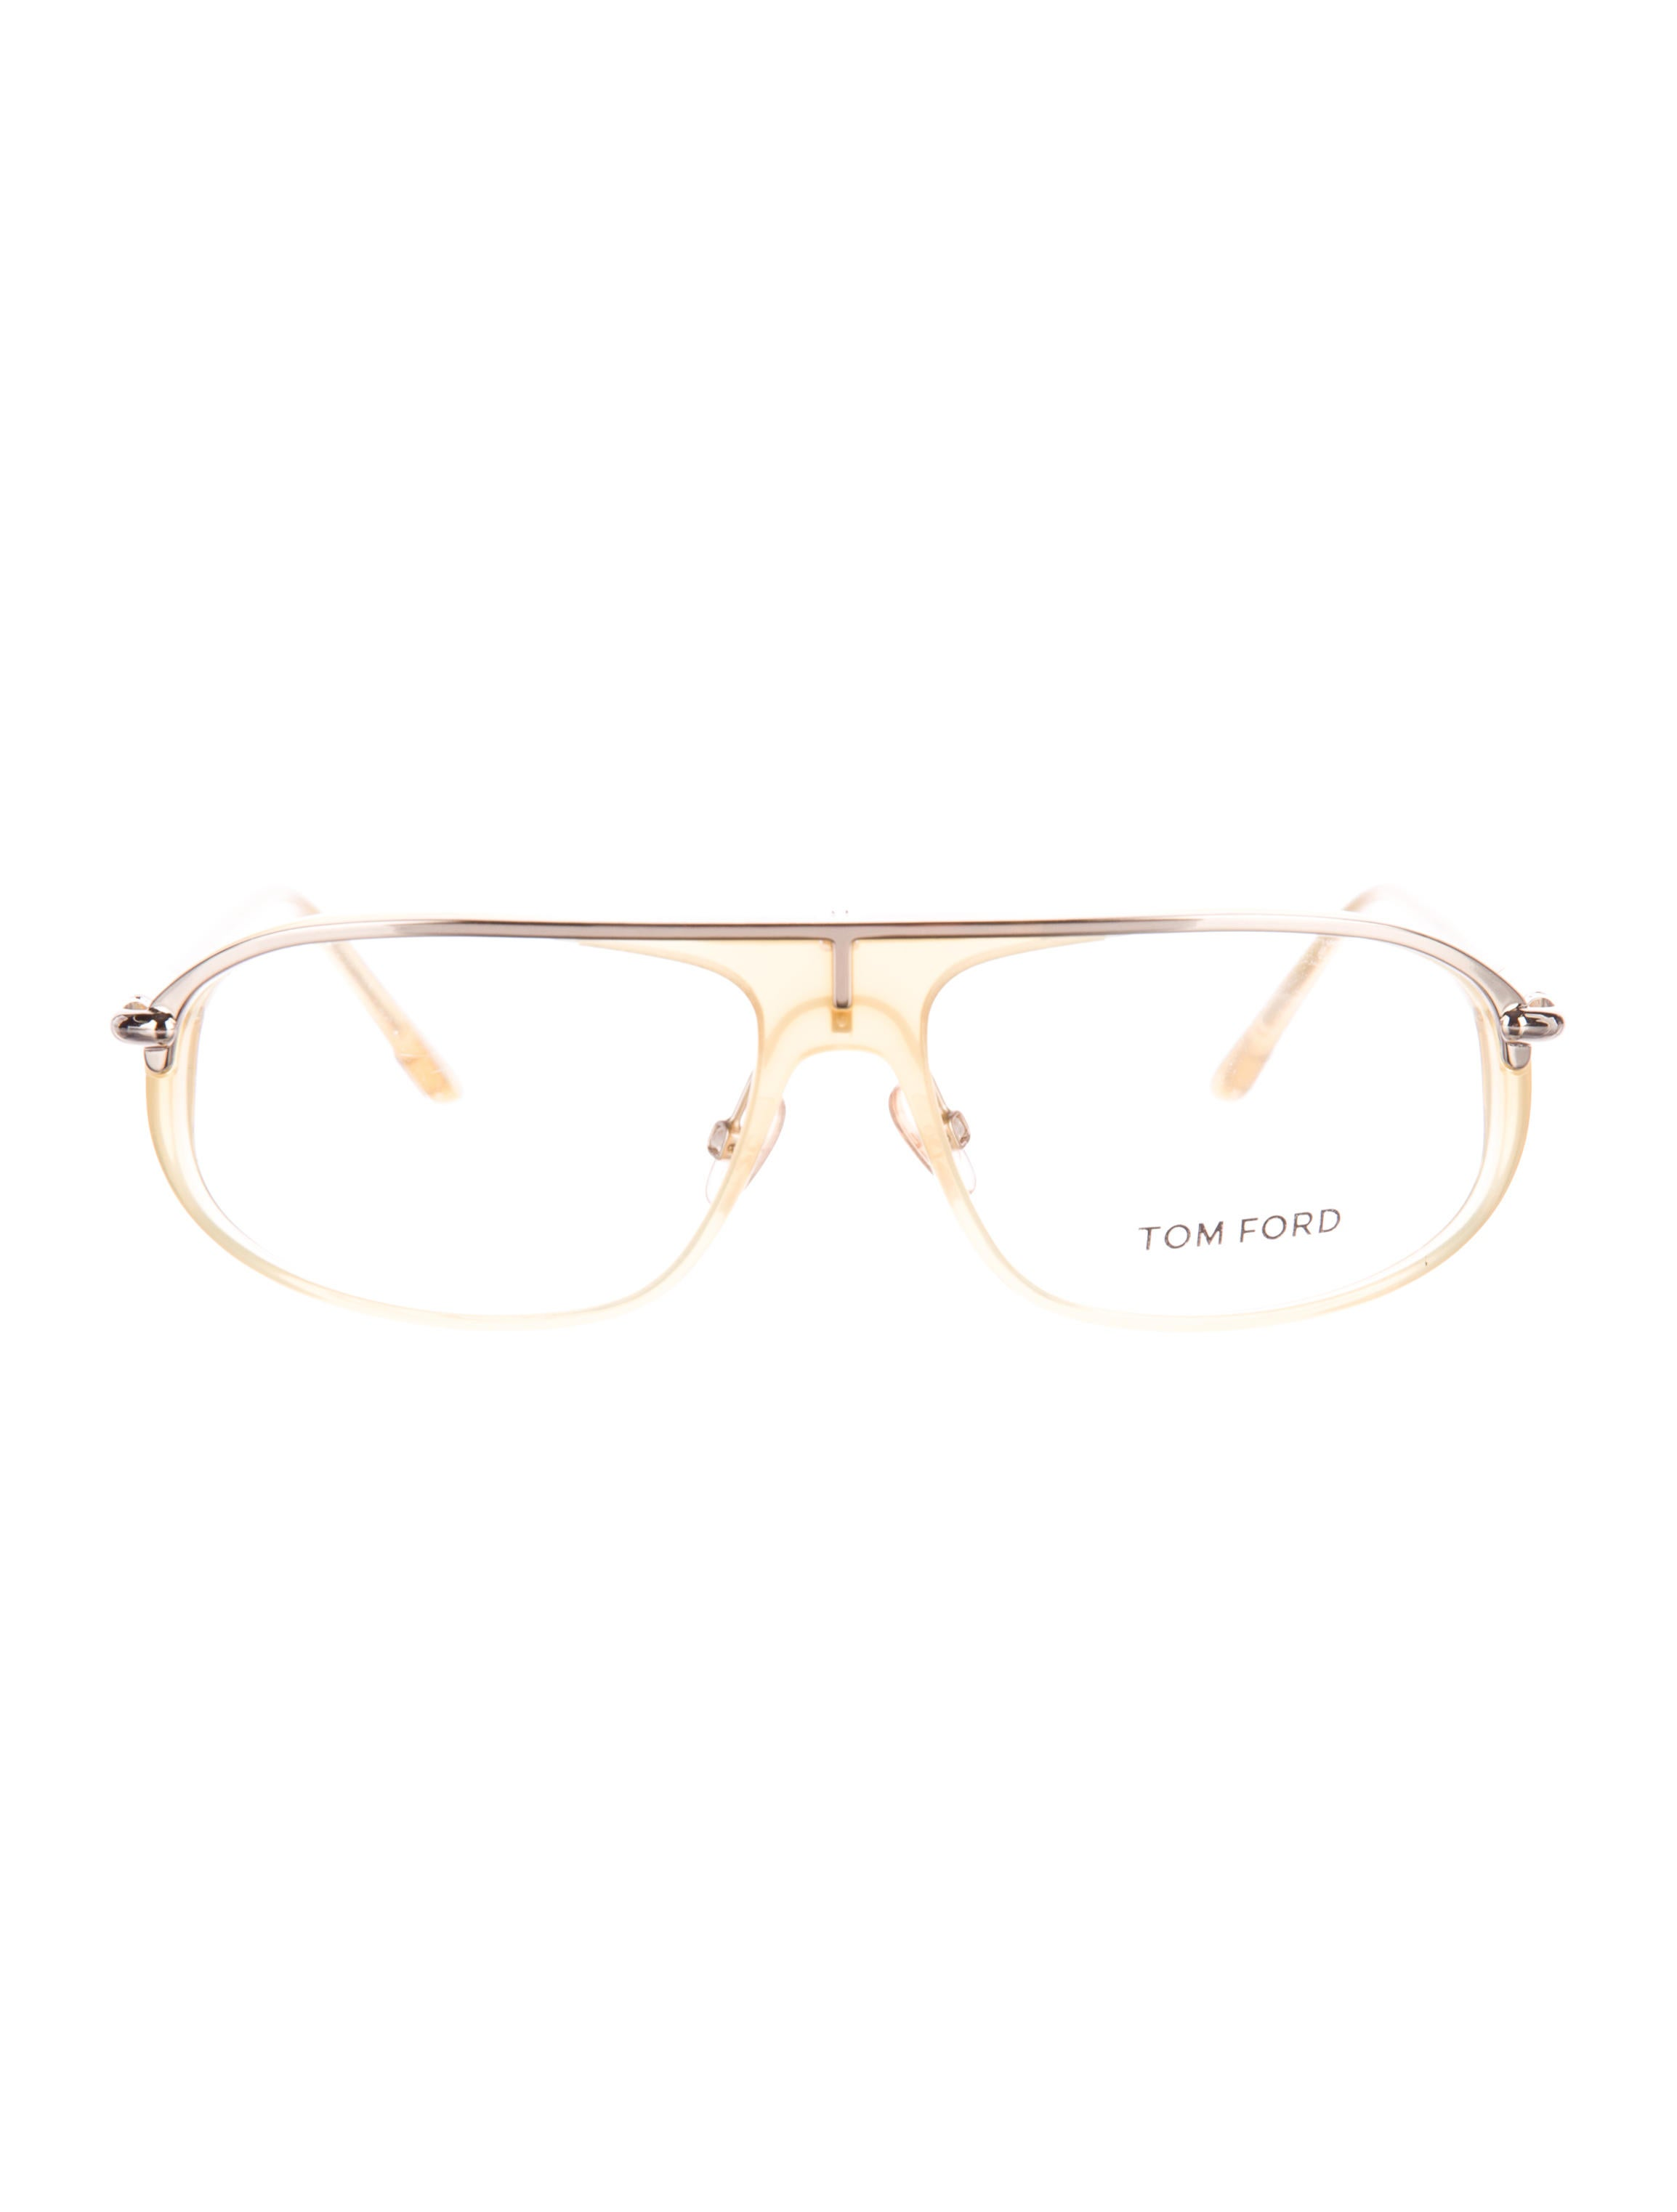 Glasses Frames Too Narrow : Tom Ford Narrow Eyeglasses Frames - Accessories - TOM32527 ...